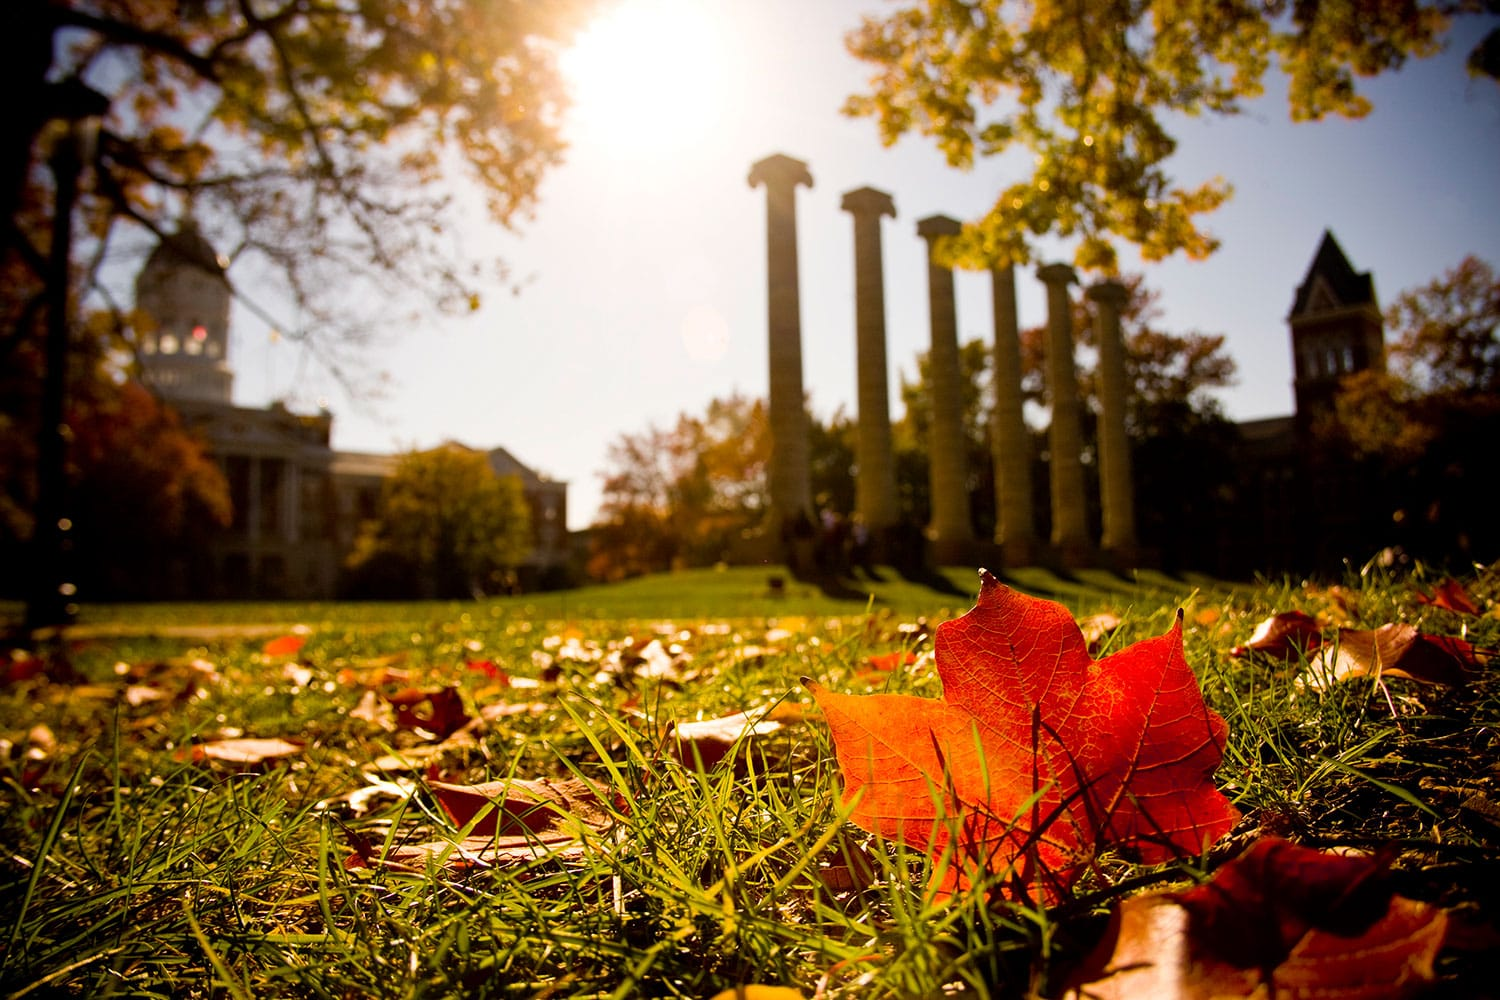 Columns in the fall